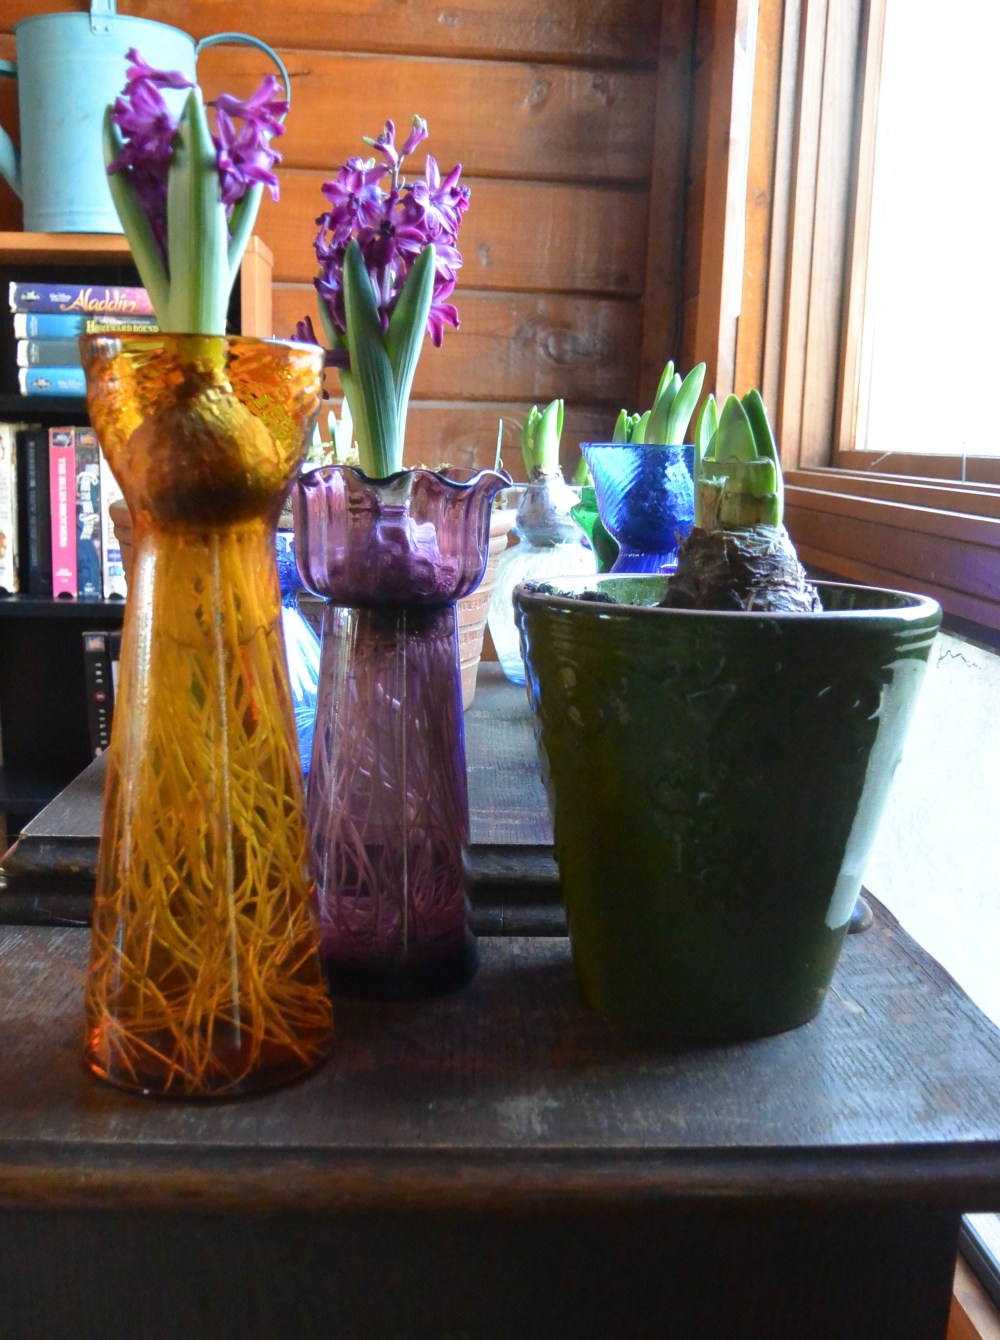 An indoor garden of blooming bulbs makes winter go by faster.